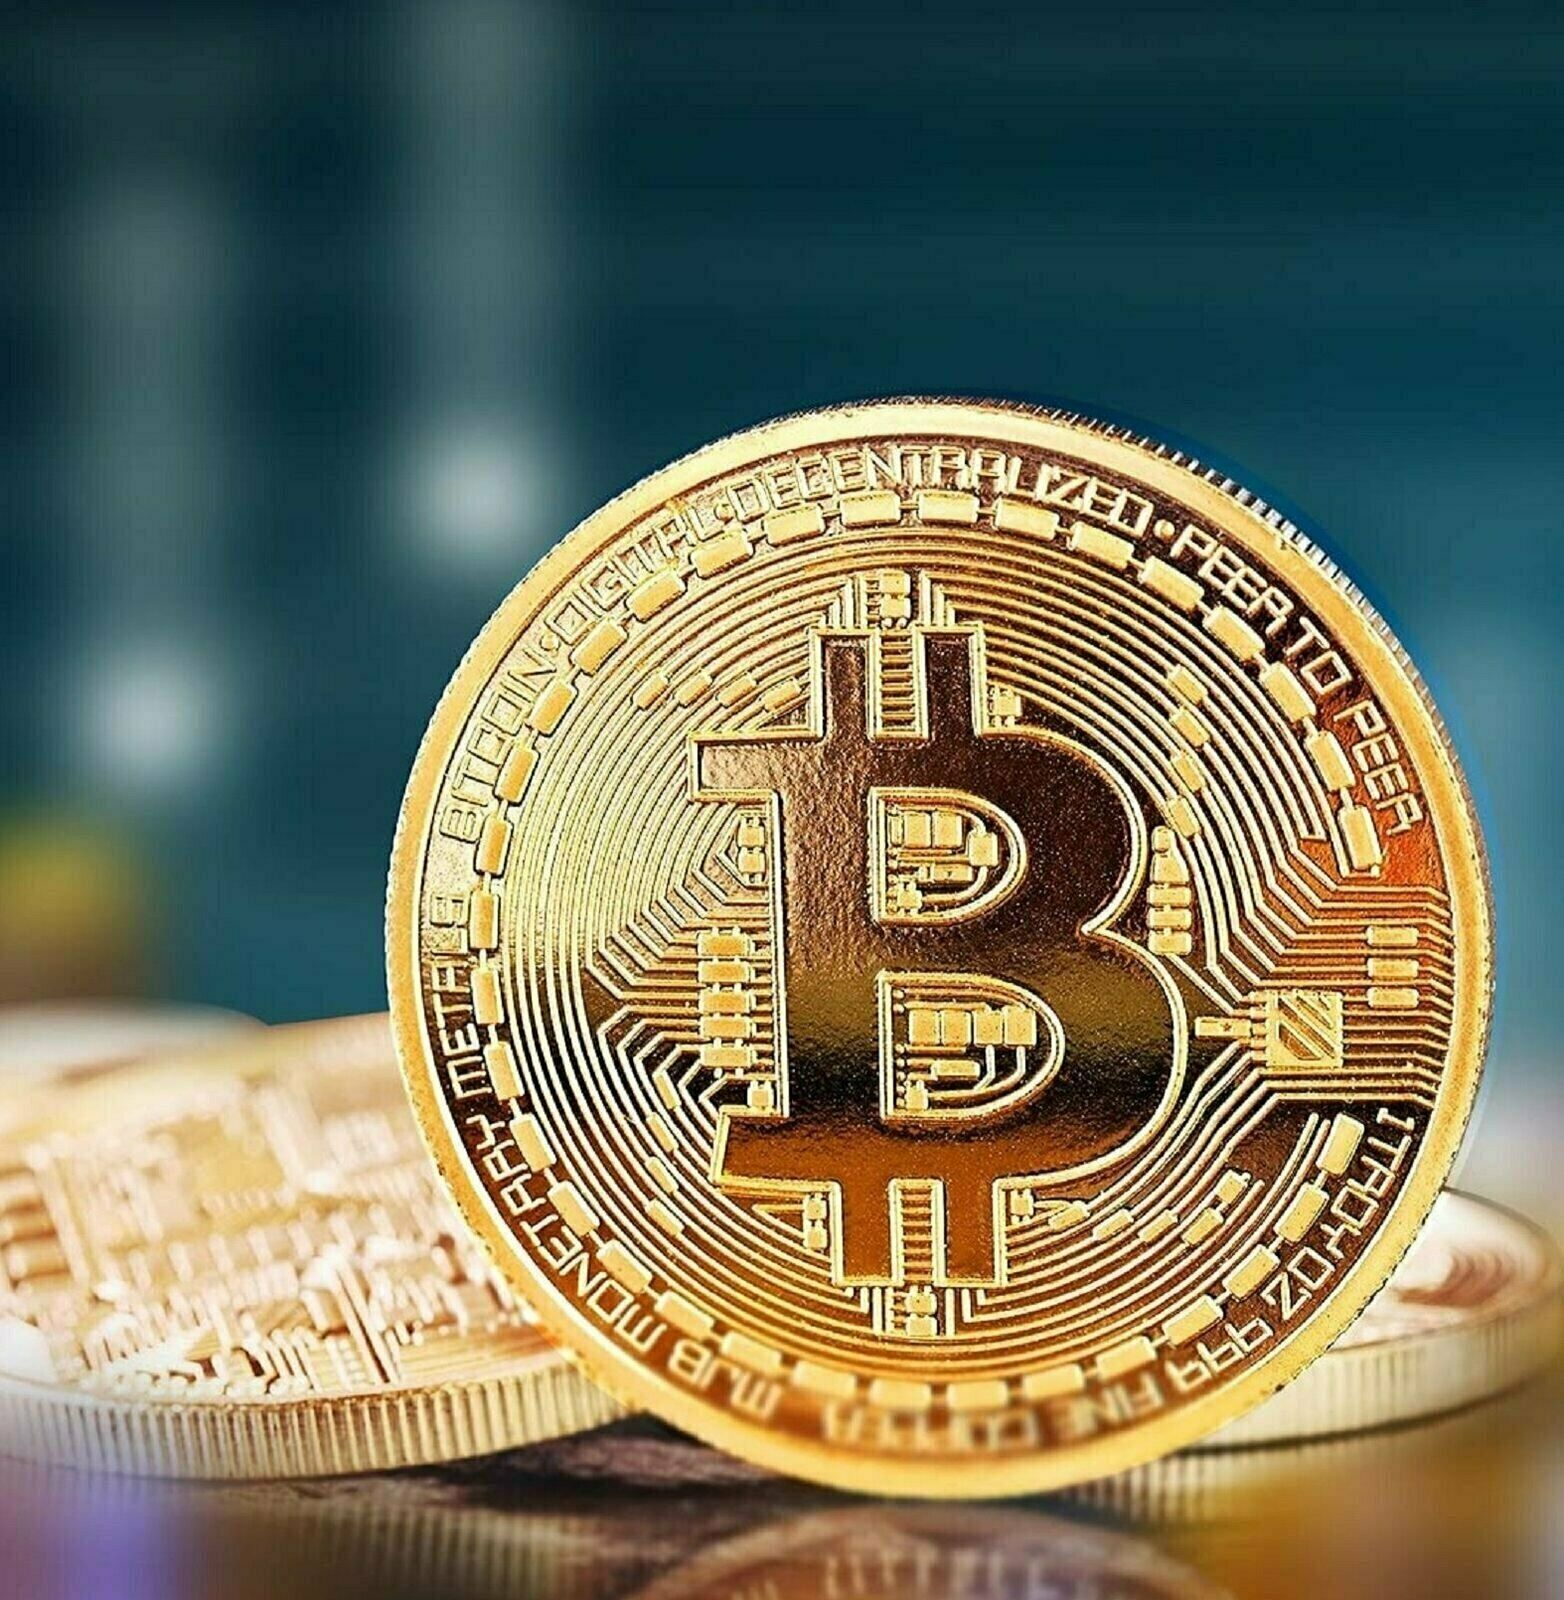 Gold Bitcoin Coins Commemorative 2020 New Collectors Gold Plated Bit Coin